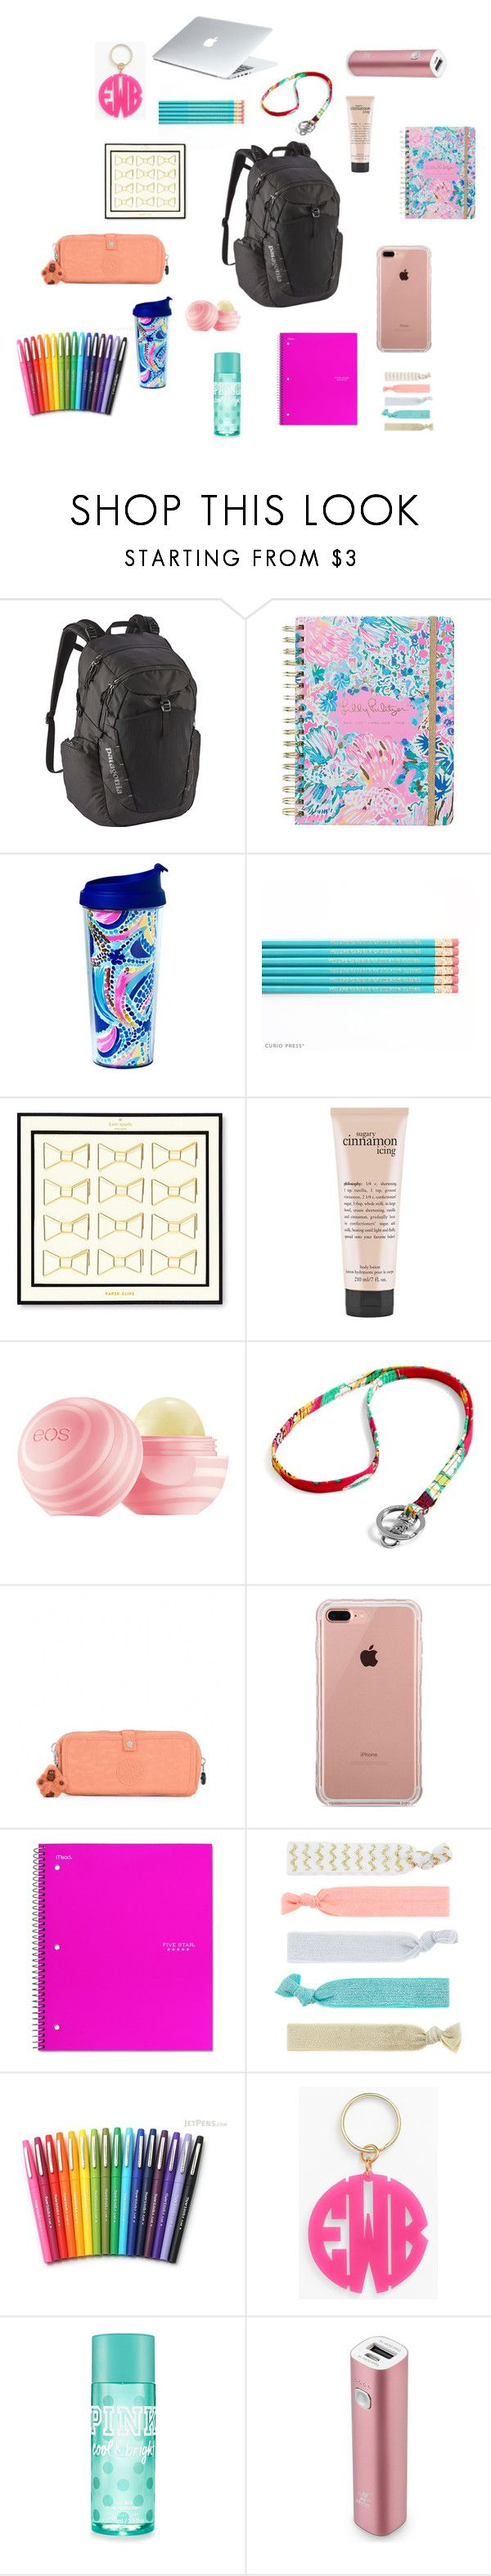 College Book Bag By Trinitystover On Polyvore Featuring Patagonia Lilly Pulitzer Kate